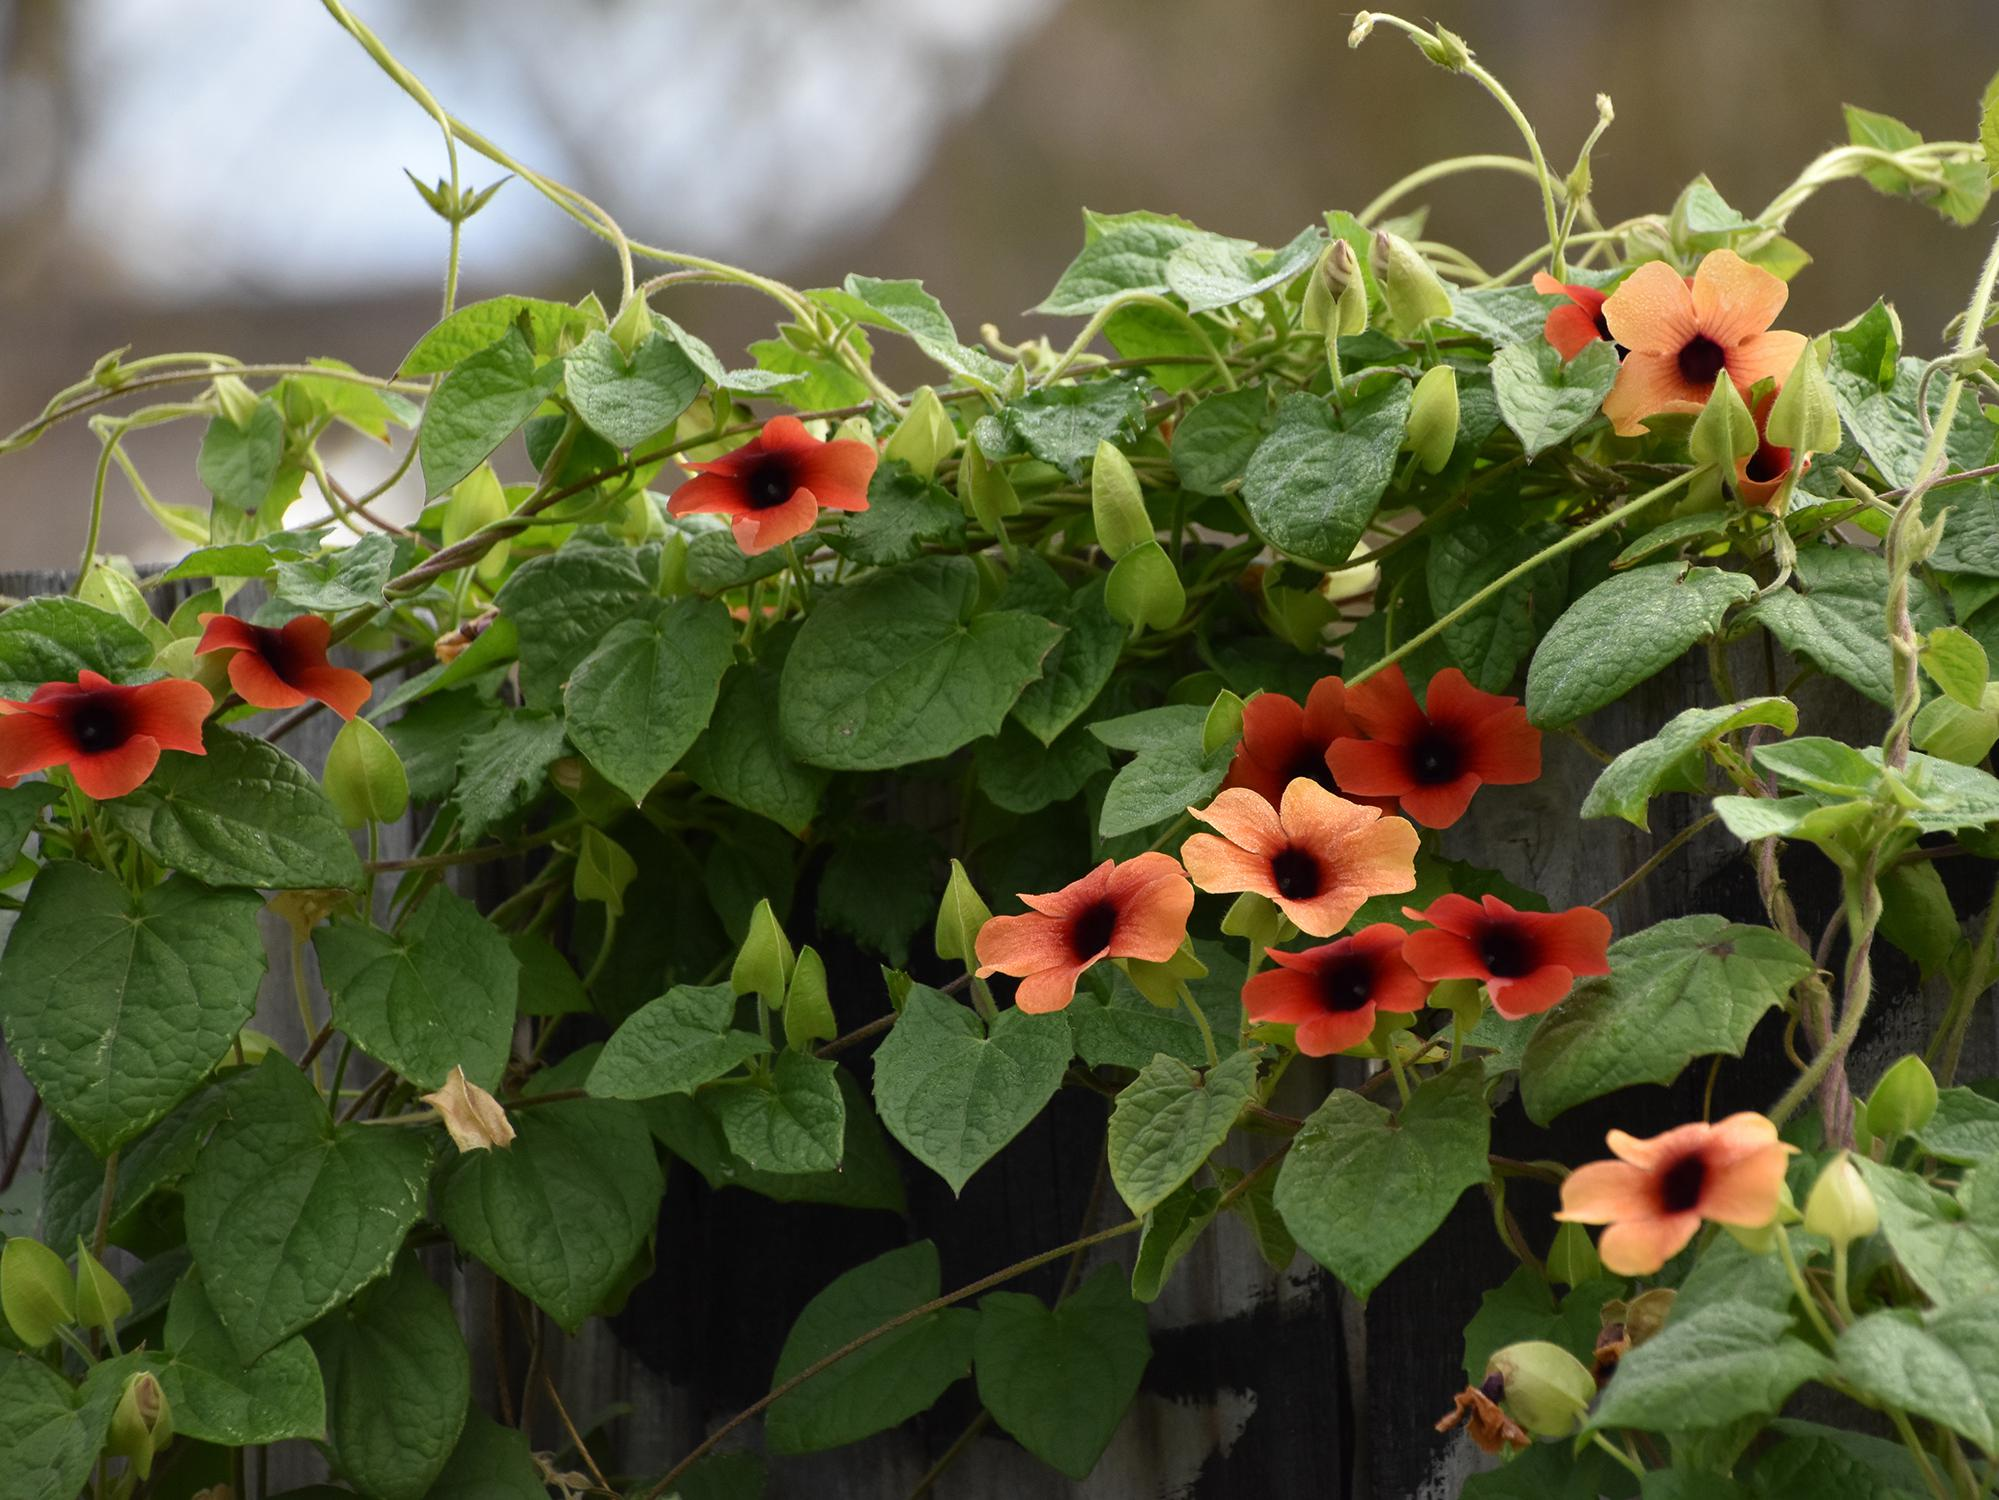 Orange vine flowers resembling black-eyed Susans straddle the top of a wooden gray fence.